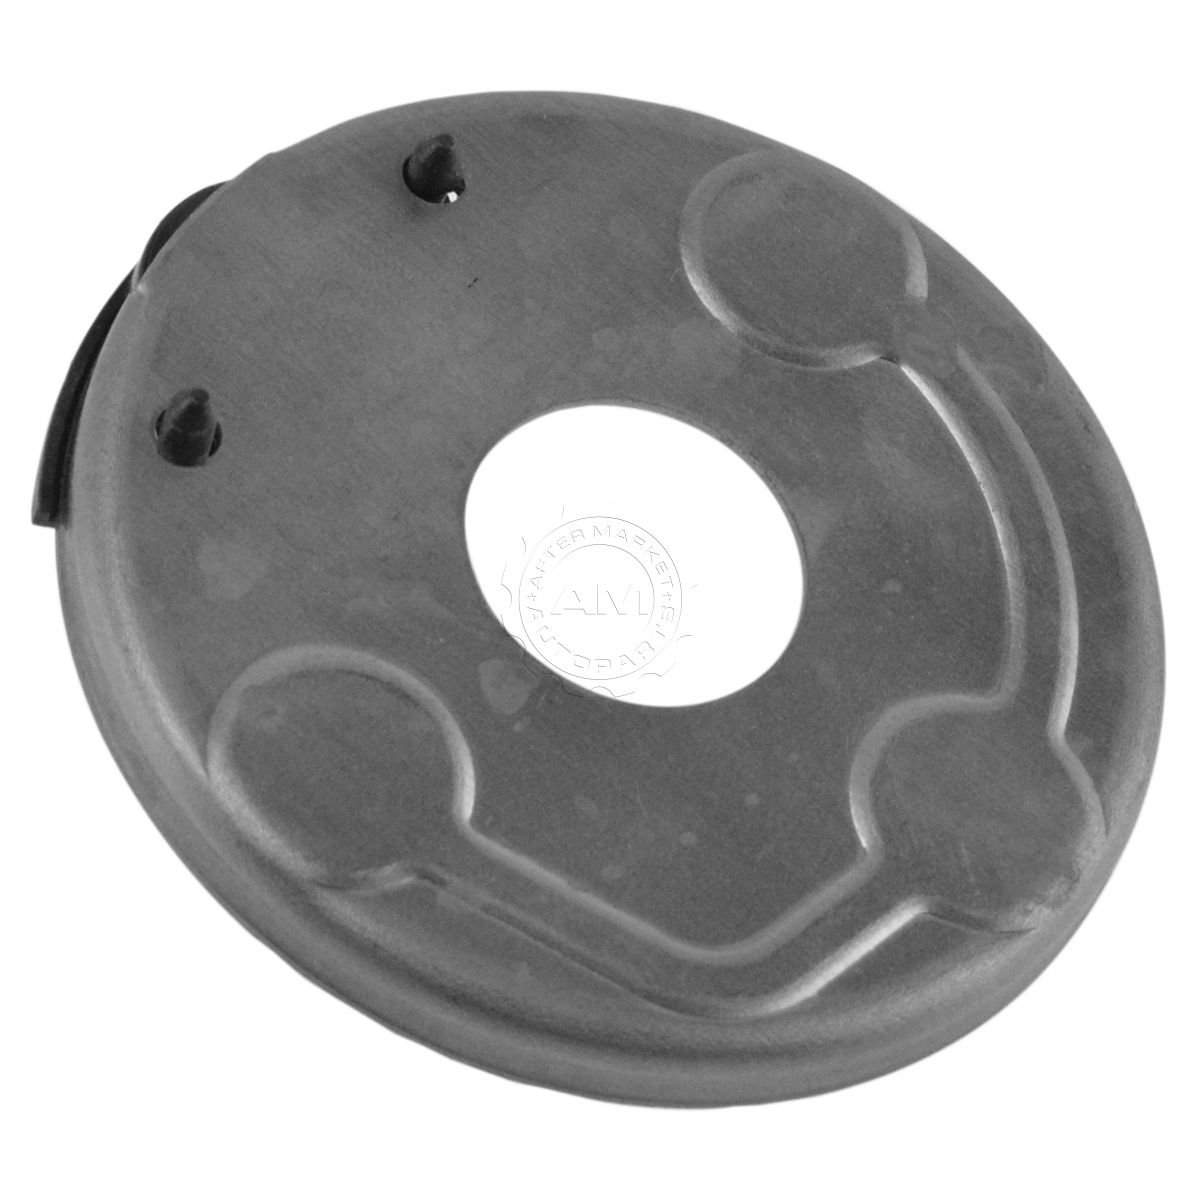 Oem F2tz9j294a Fuel Bowl To Filter Heater For Ford Pickup Truck 2001 F550 Location Diesel New